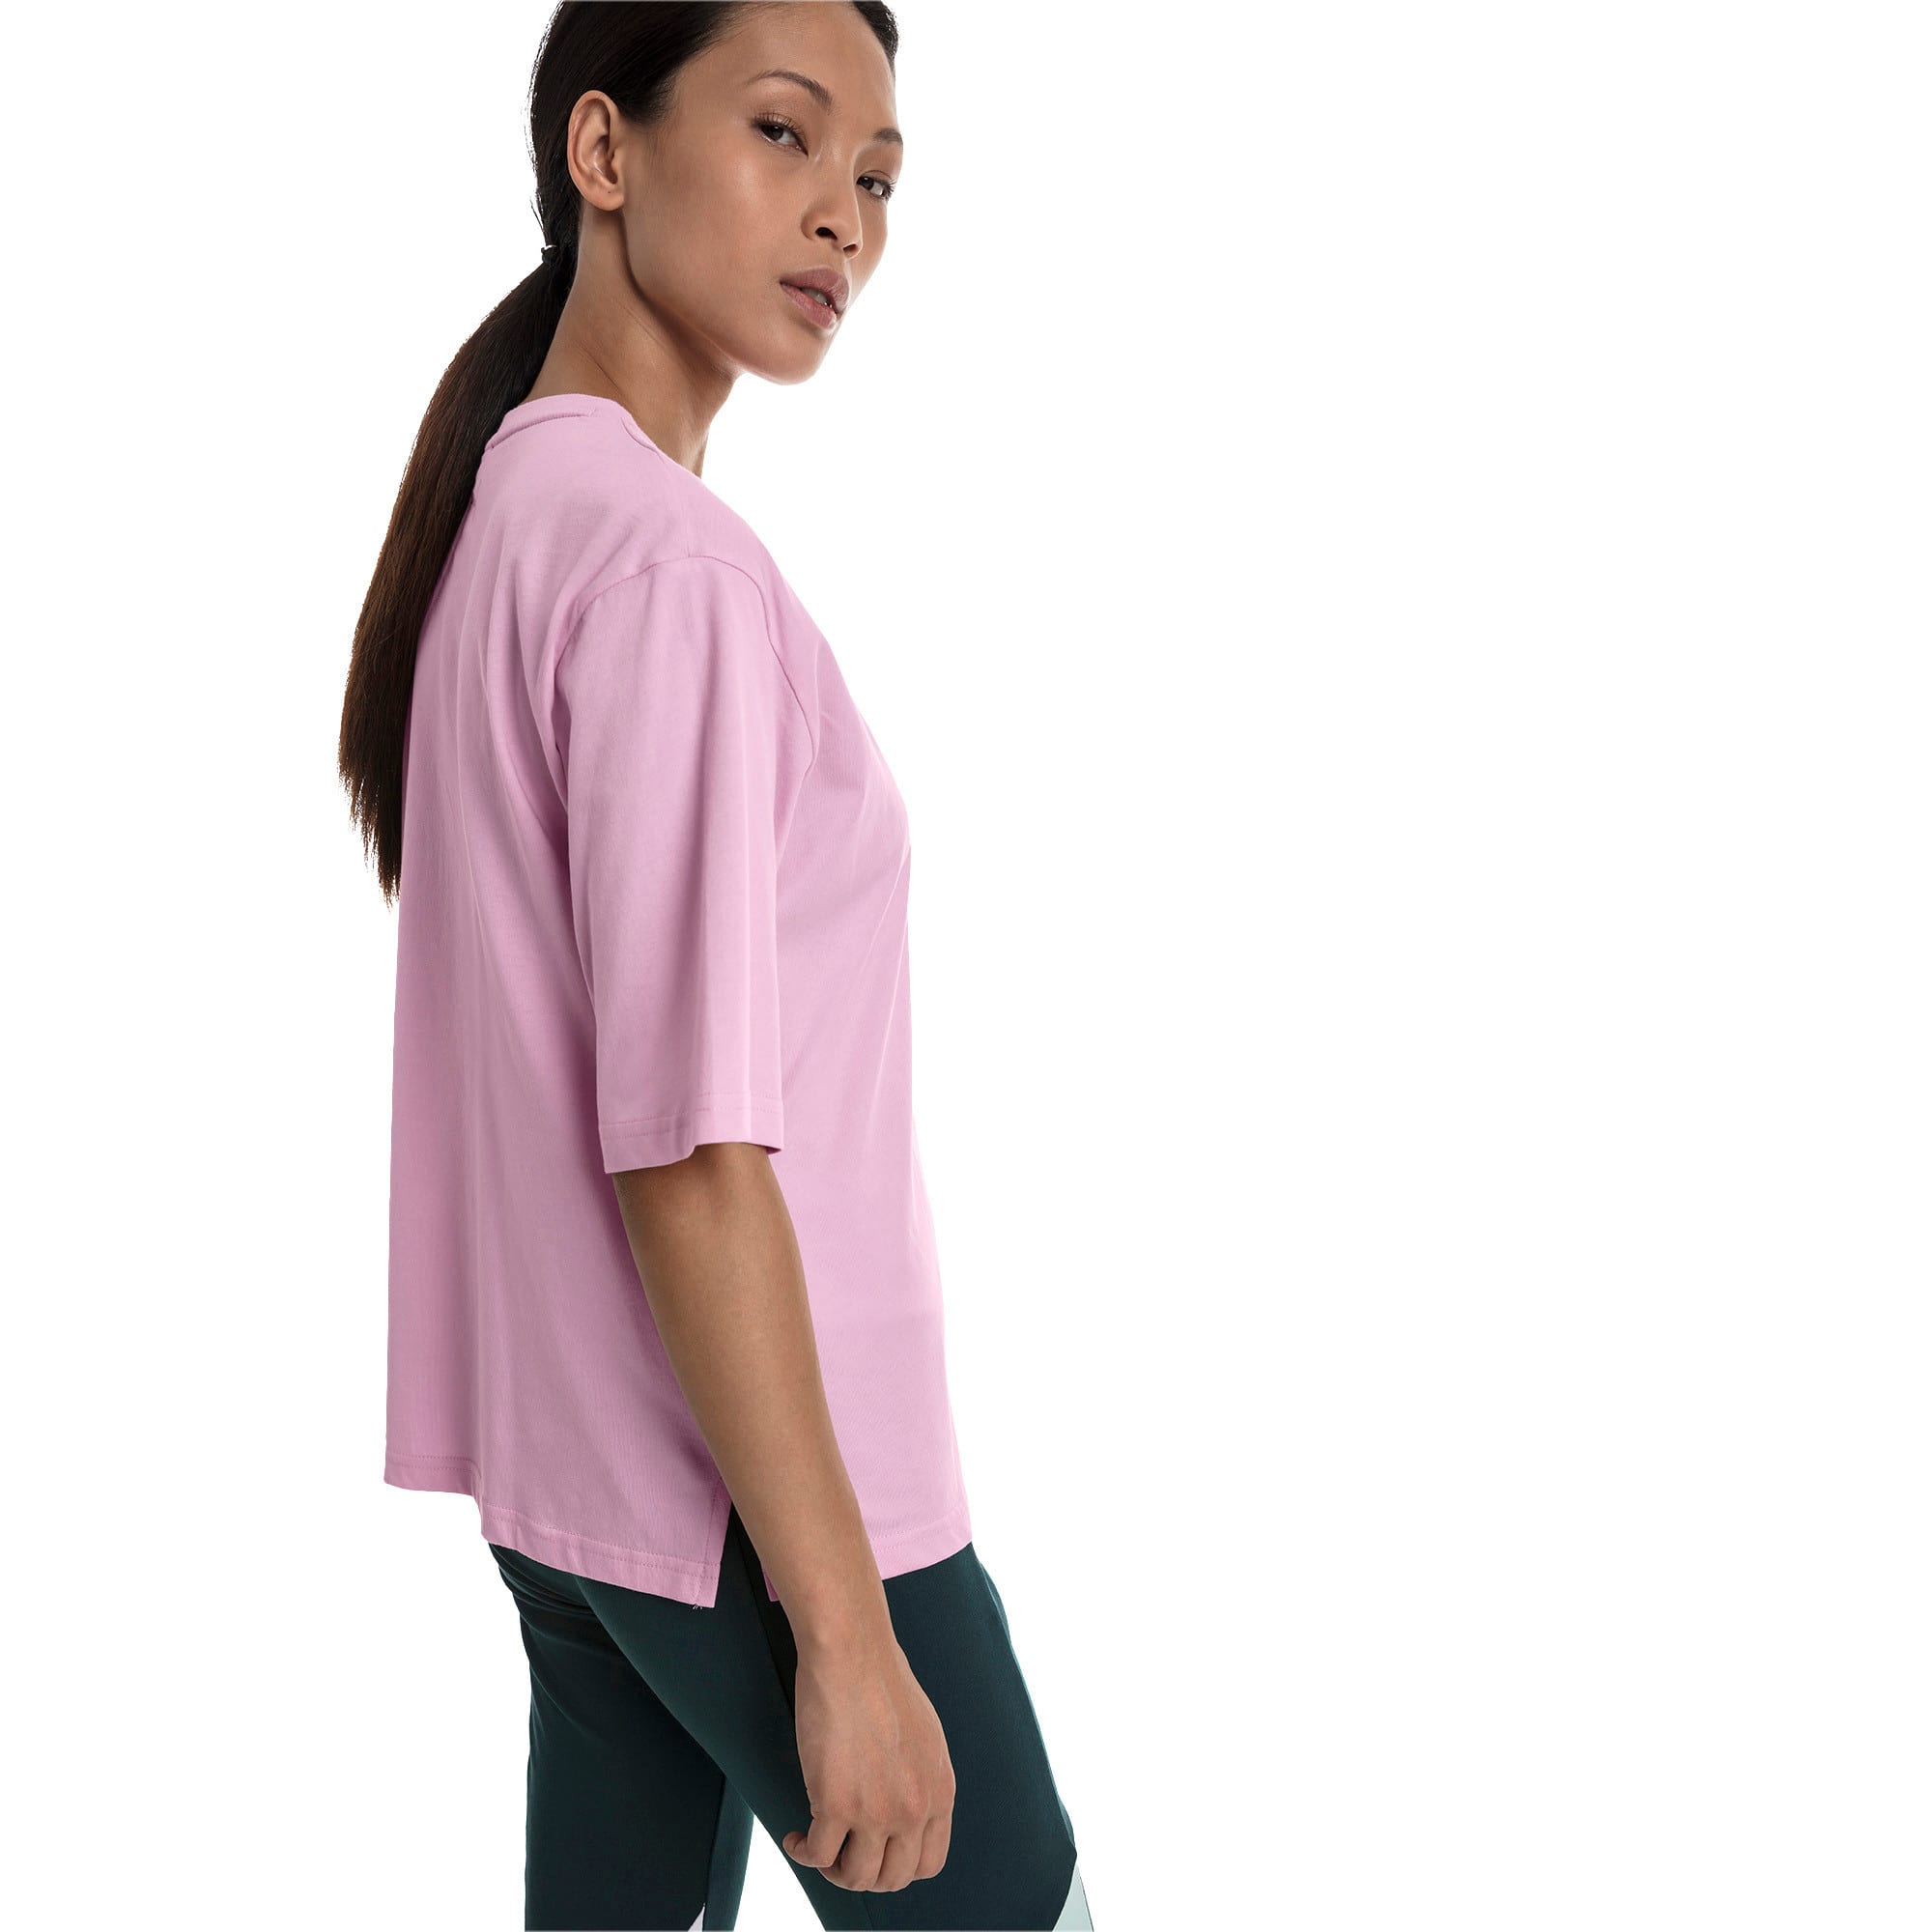 Thumbnail 2 of Trailblazer Women's Tee, Pale Pink, medium